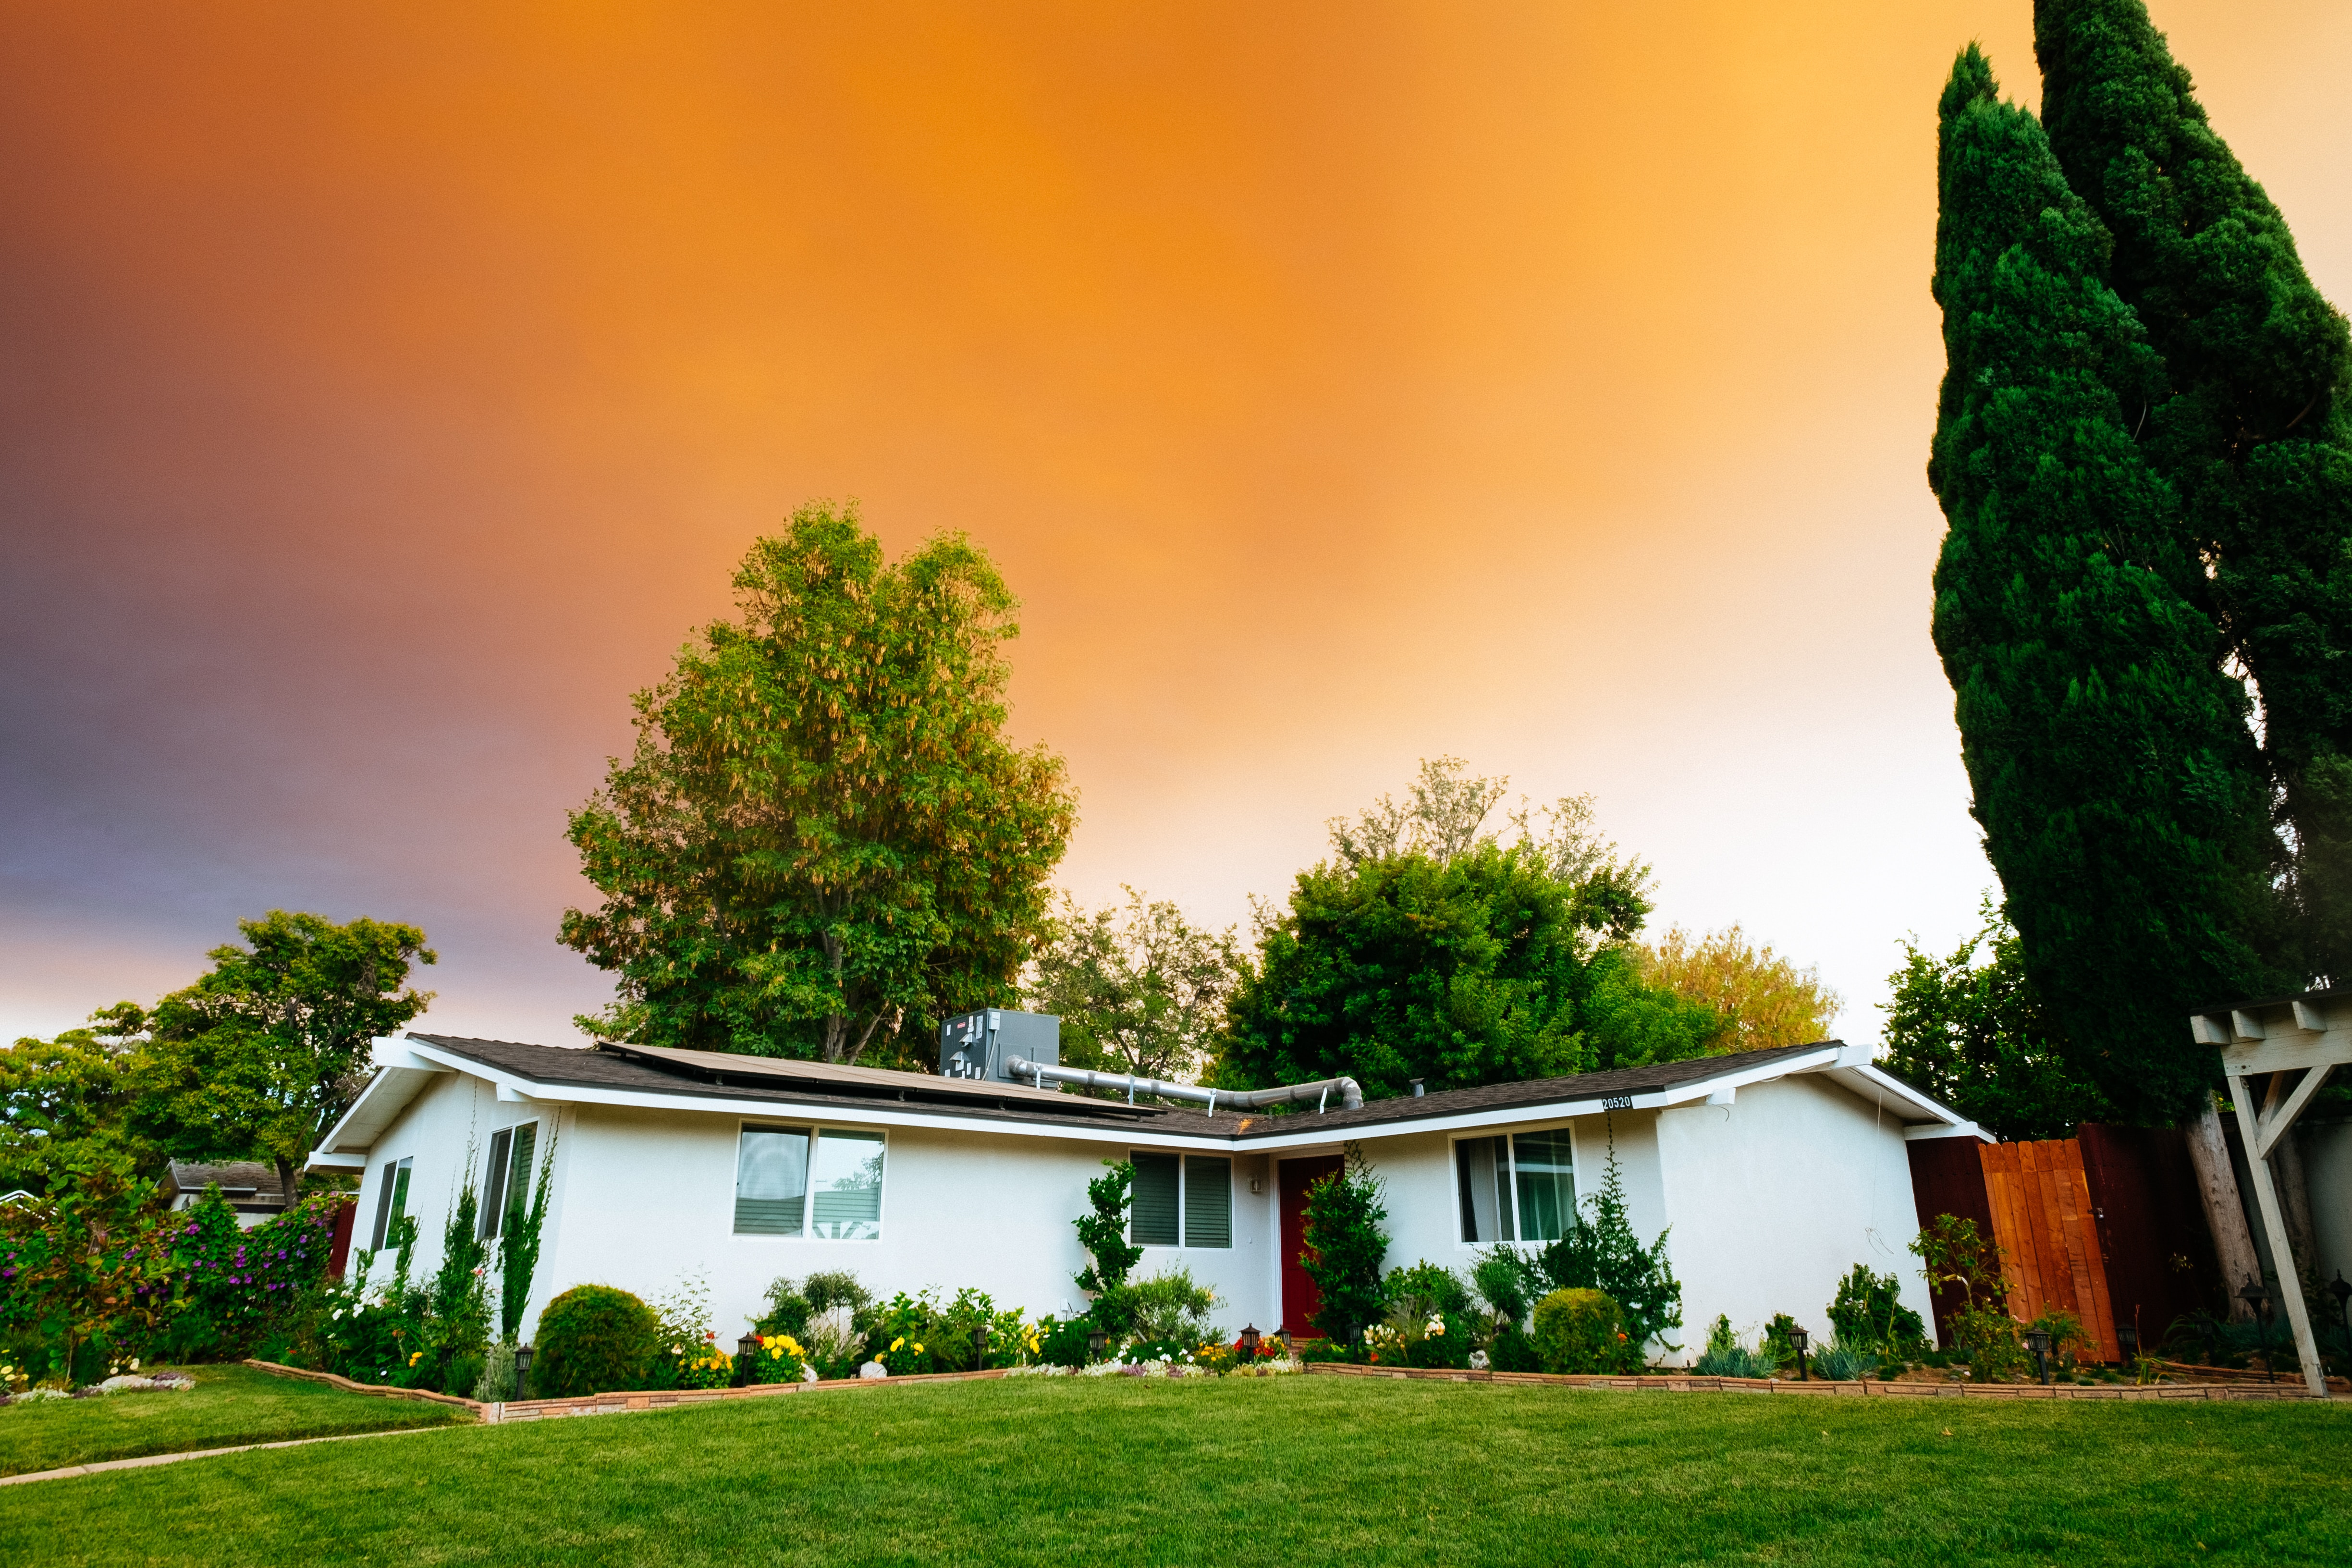 How to Purchase a Manufactured Home if You Have a Bad Credit